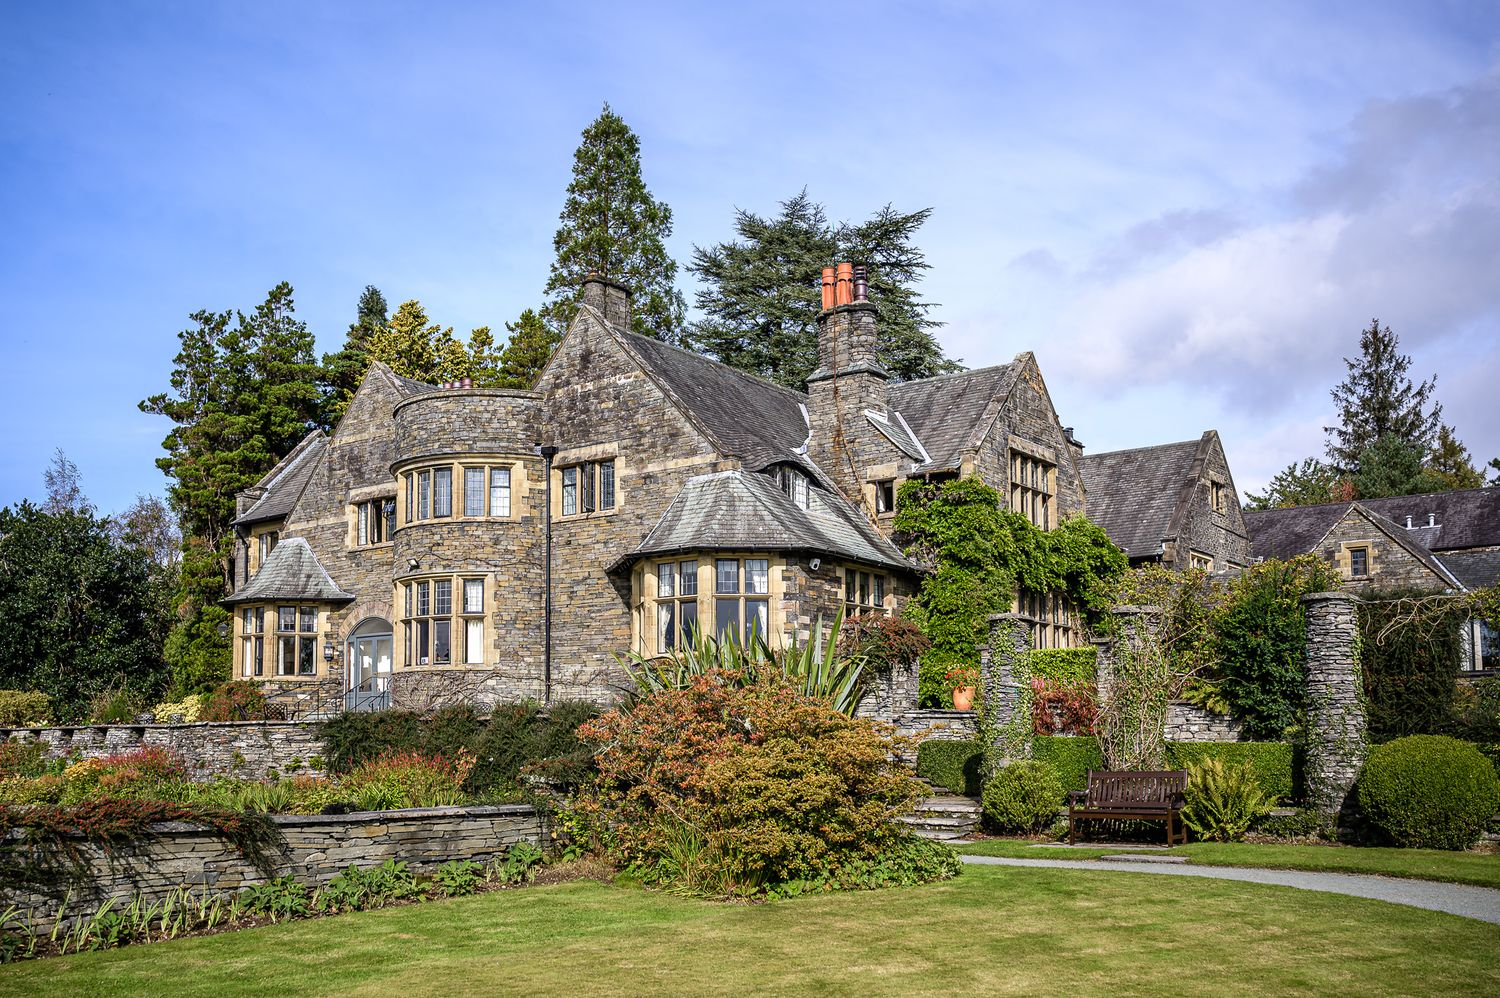 Cragwood Country House Hotel between Ambleside and Windermere in the Lake District